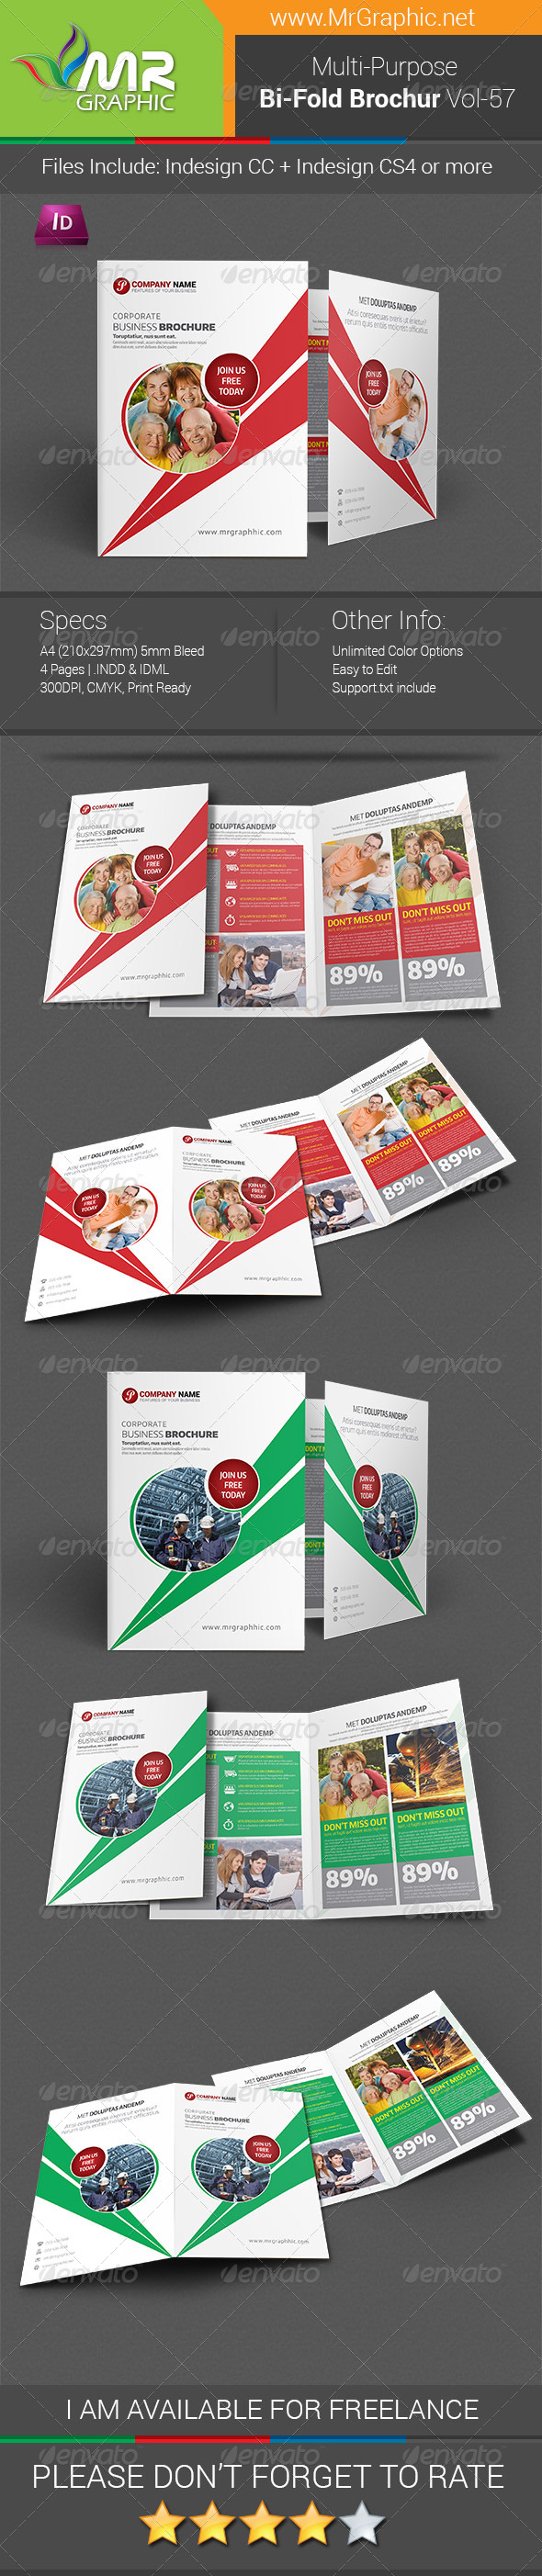 GraphicRiver Multipurpose Bifold Brochure Template Vol-57 7758003